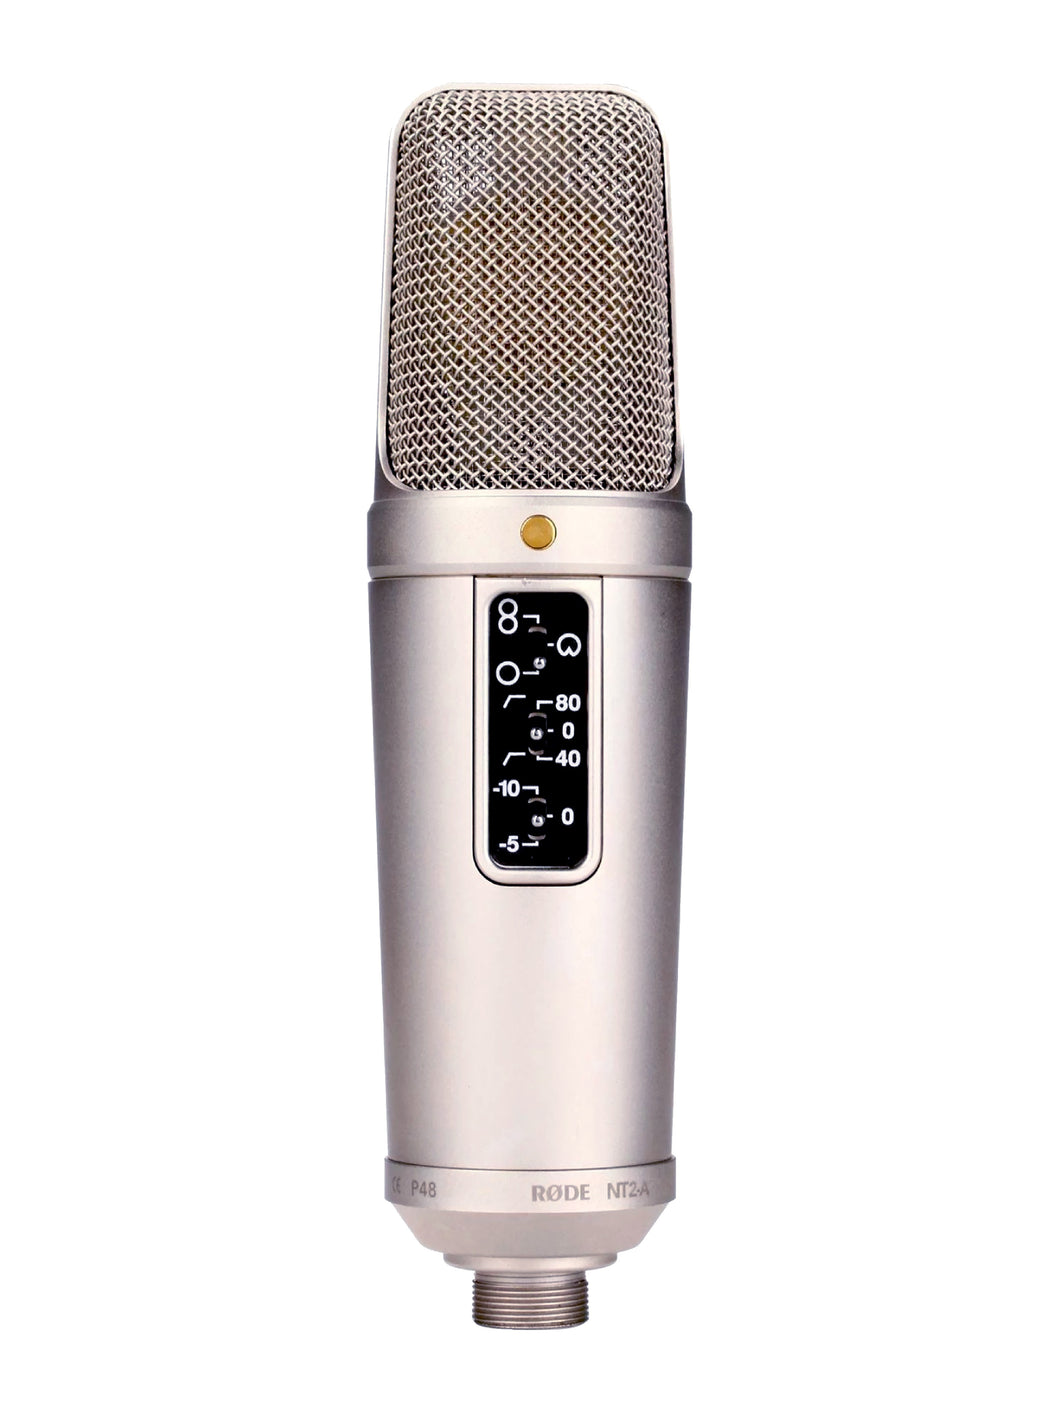 Rode NT2 A Large Capsule Studio Condenser Microphone